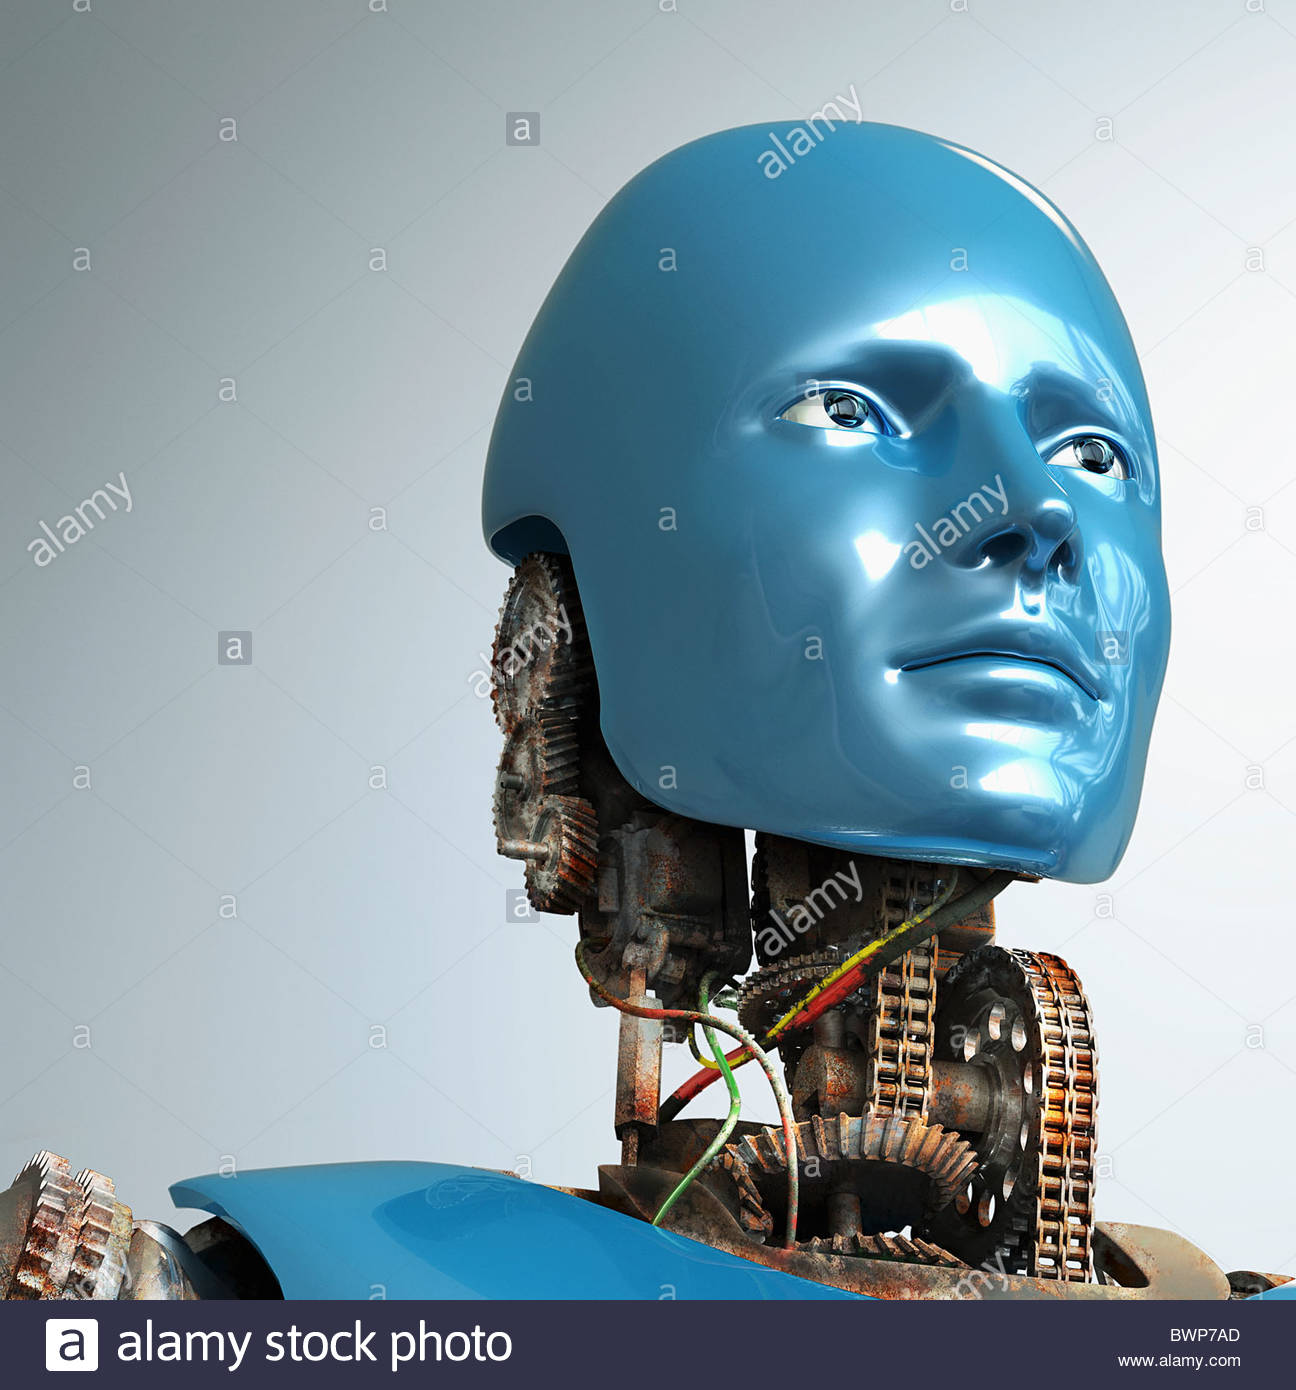 Robot with rusted, blue face - Stock Image